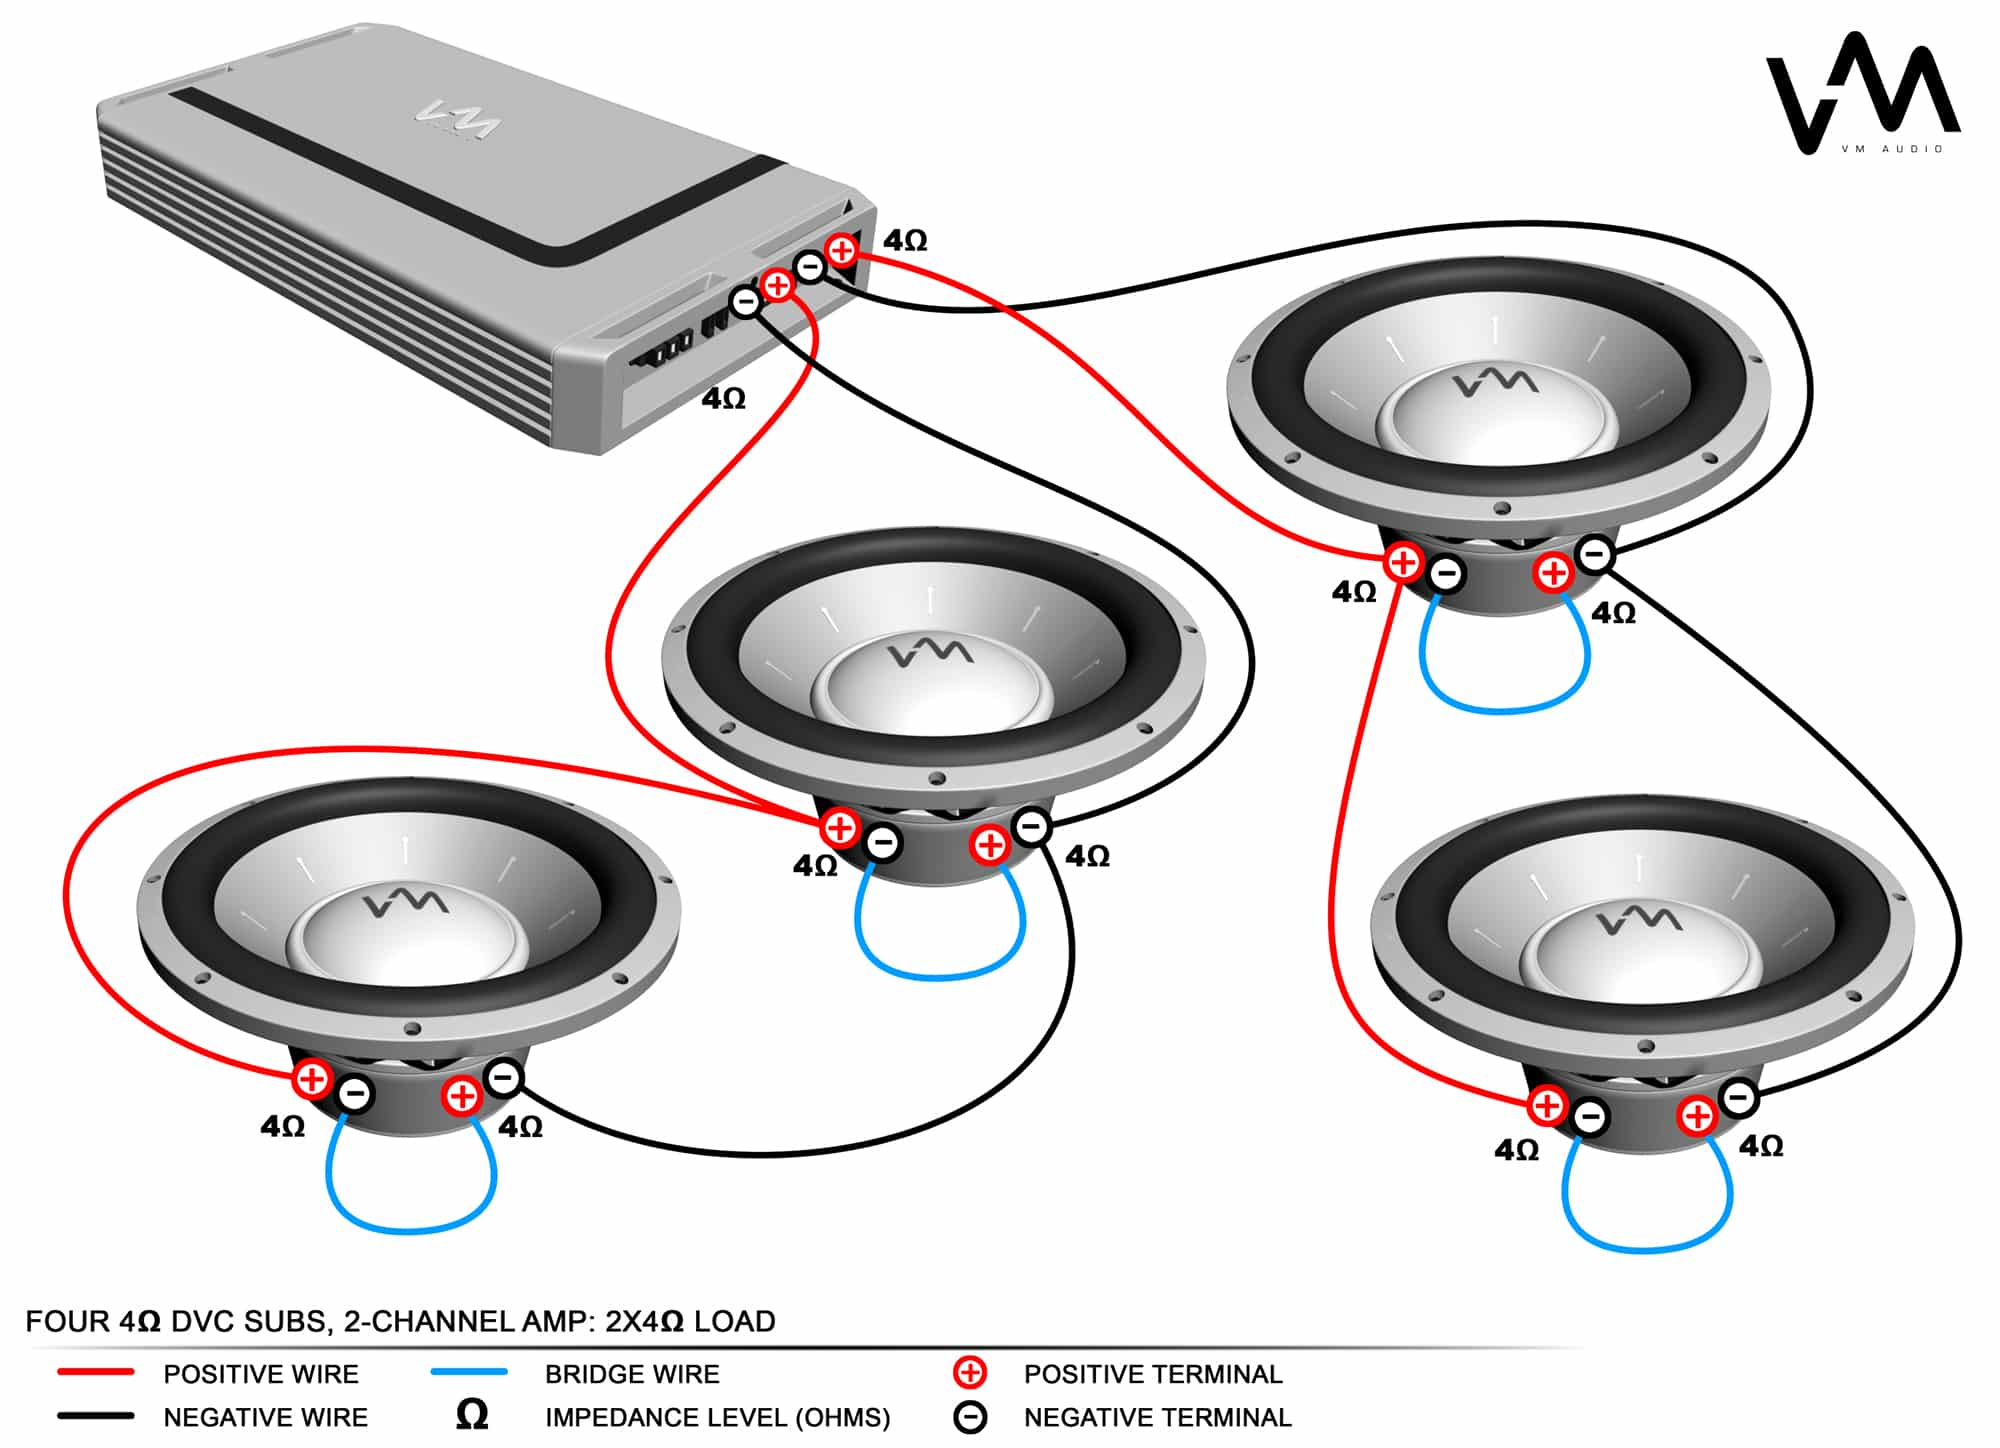 audio amplifier wiring how to connect four speakers to a 2 channel amp audio amplifier with wifi four speakers to a 2 channel amp